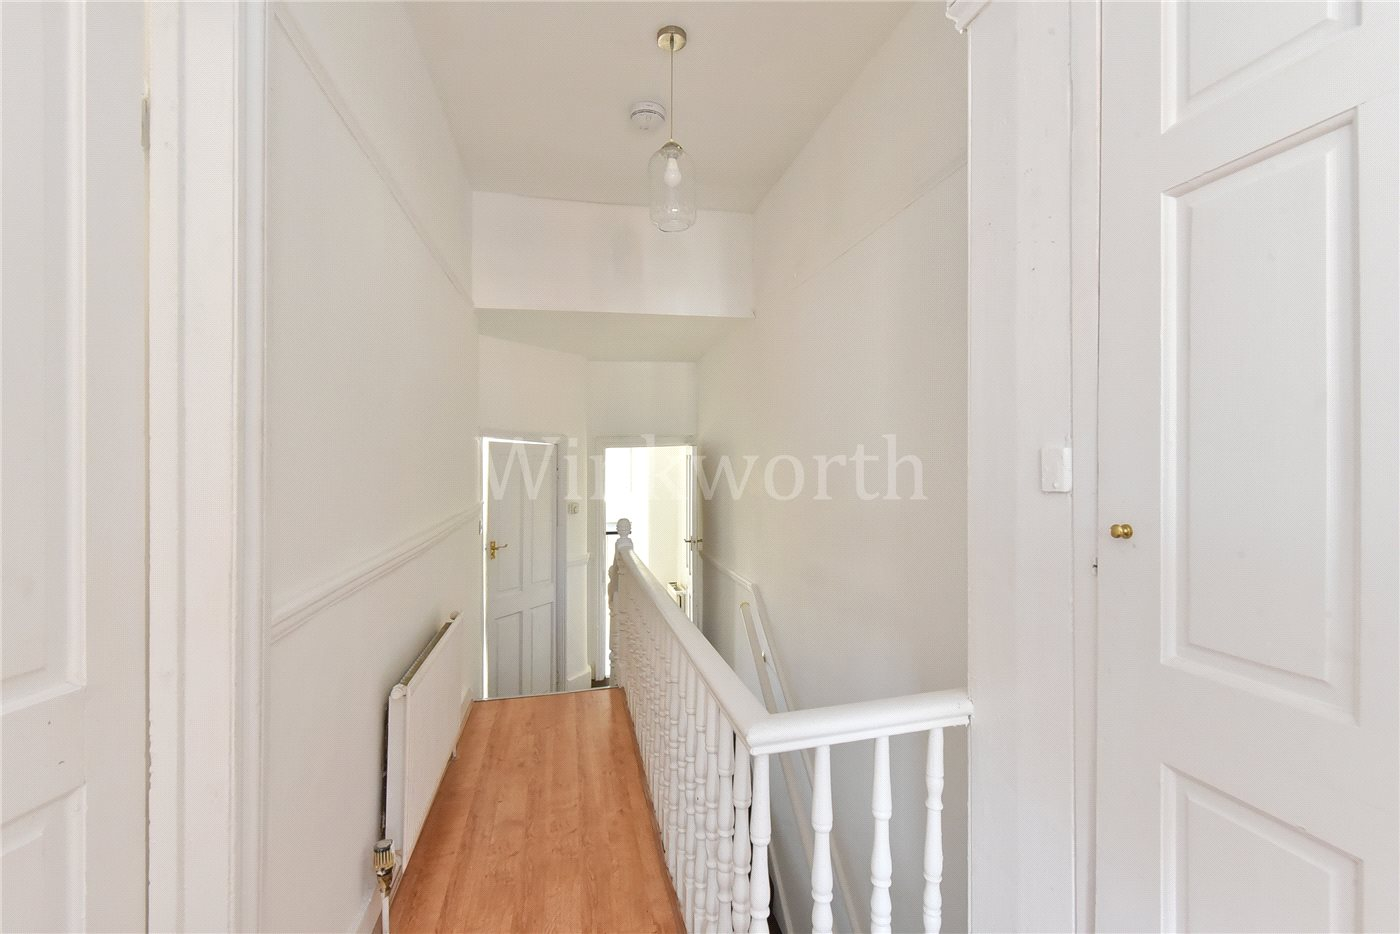 1 bedroom property to rent in Kitchener Road, Tottenham, N17 - £1275 pcm